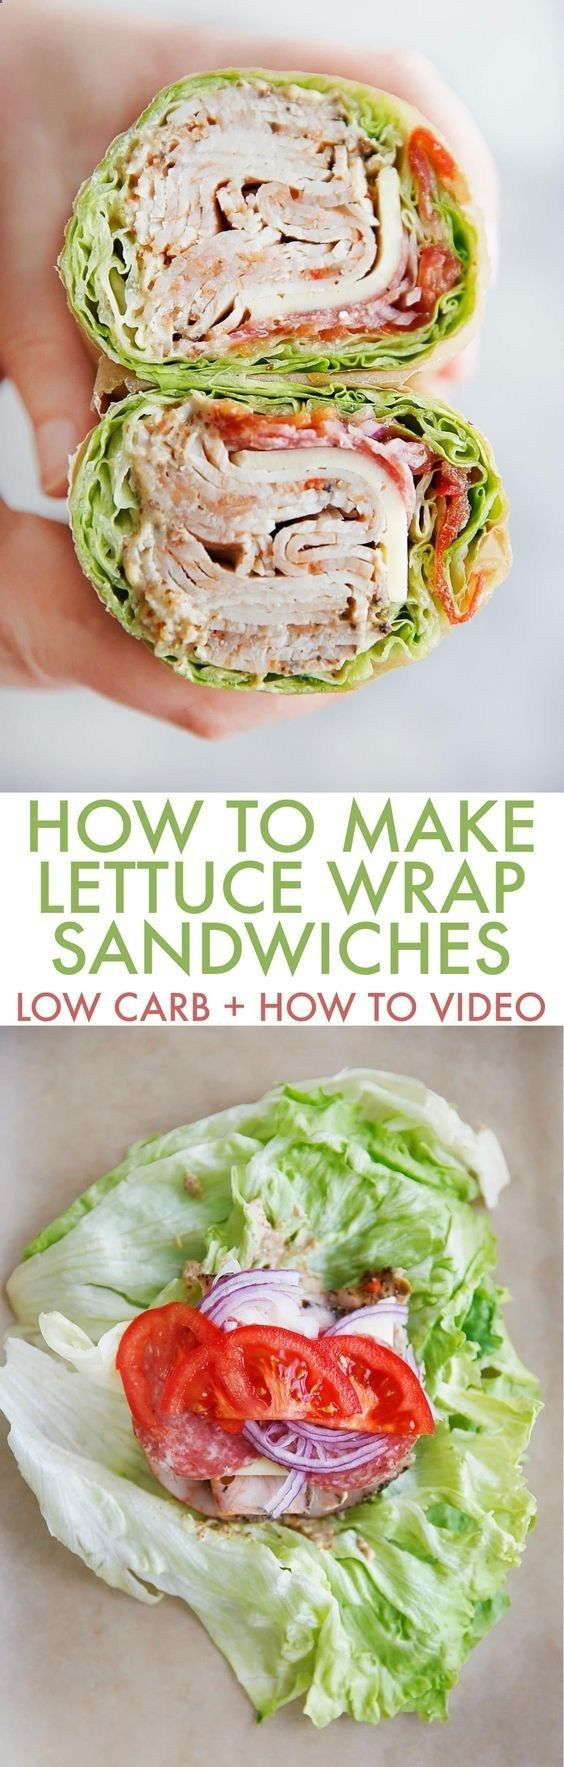 How To Make A Lettuce Wrap Sandwich Low Carb Lexis Clean Kitchen Healthy Sandwiches Easy